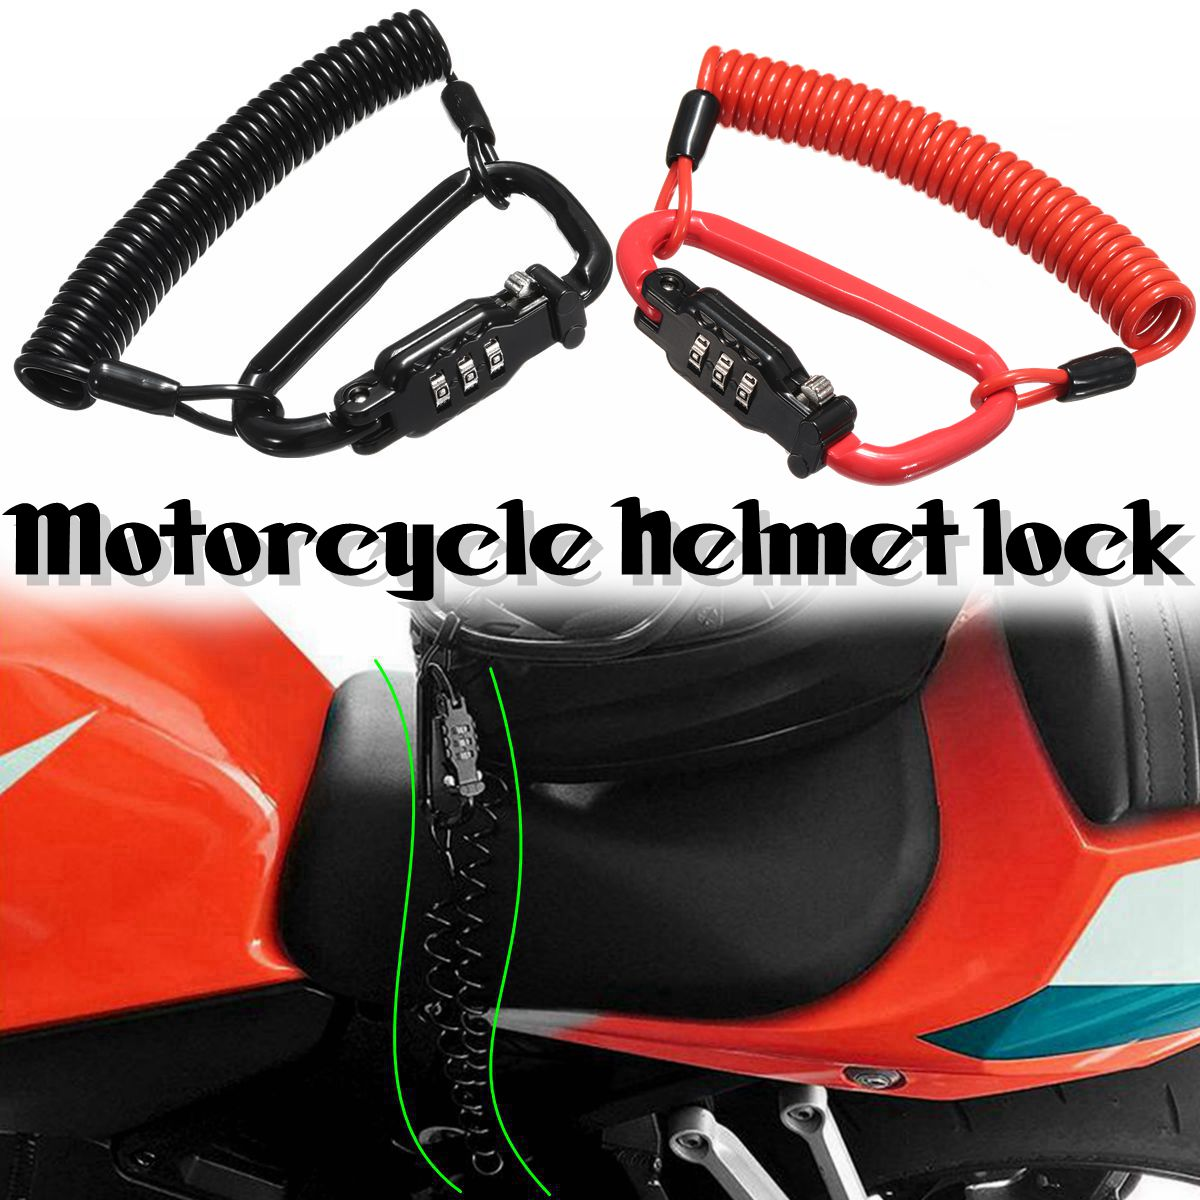 Motorcycle Scooter Security Helmet Lock Combination Coded PIN with T-Bar Rubber Cable